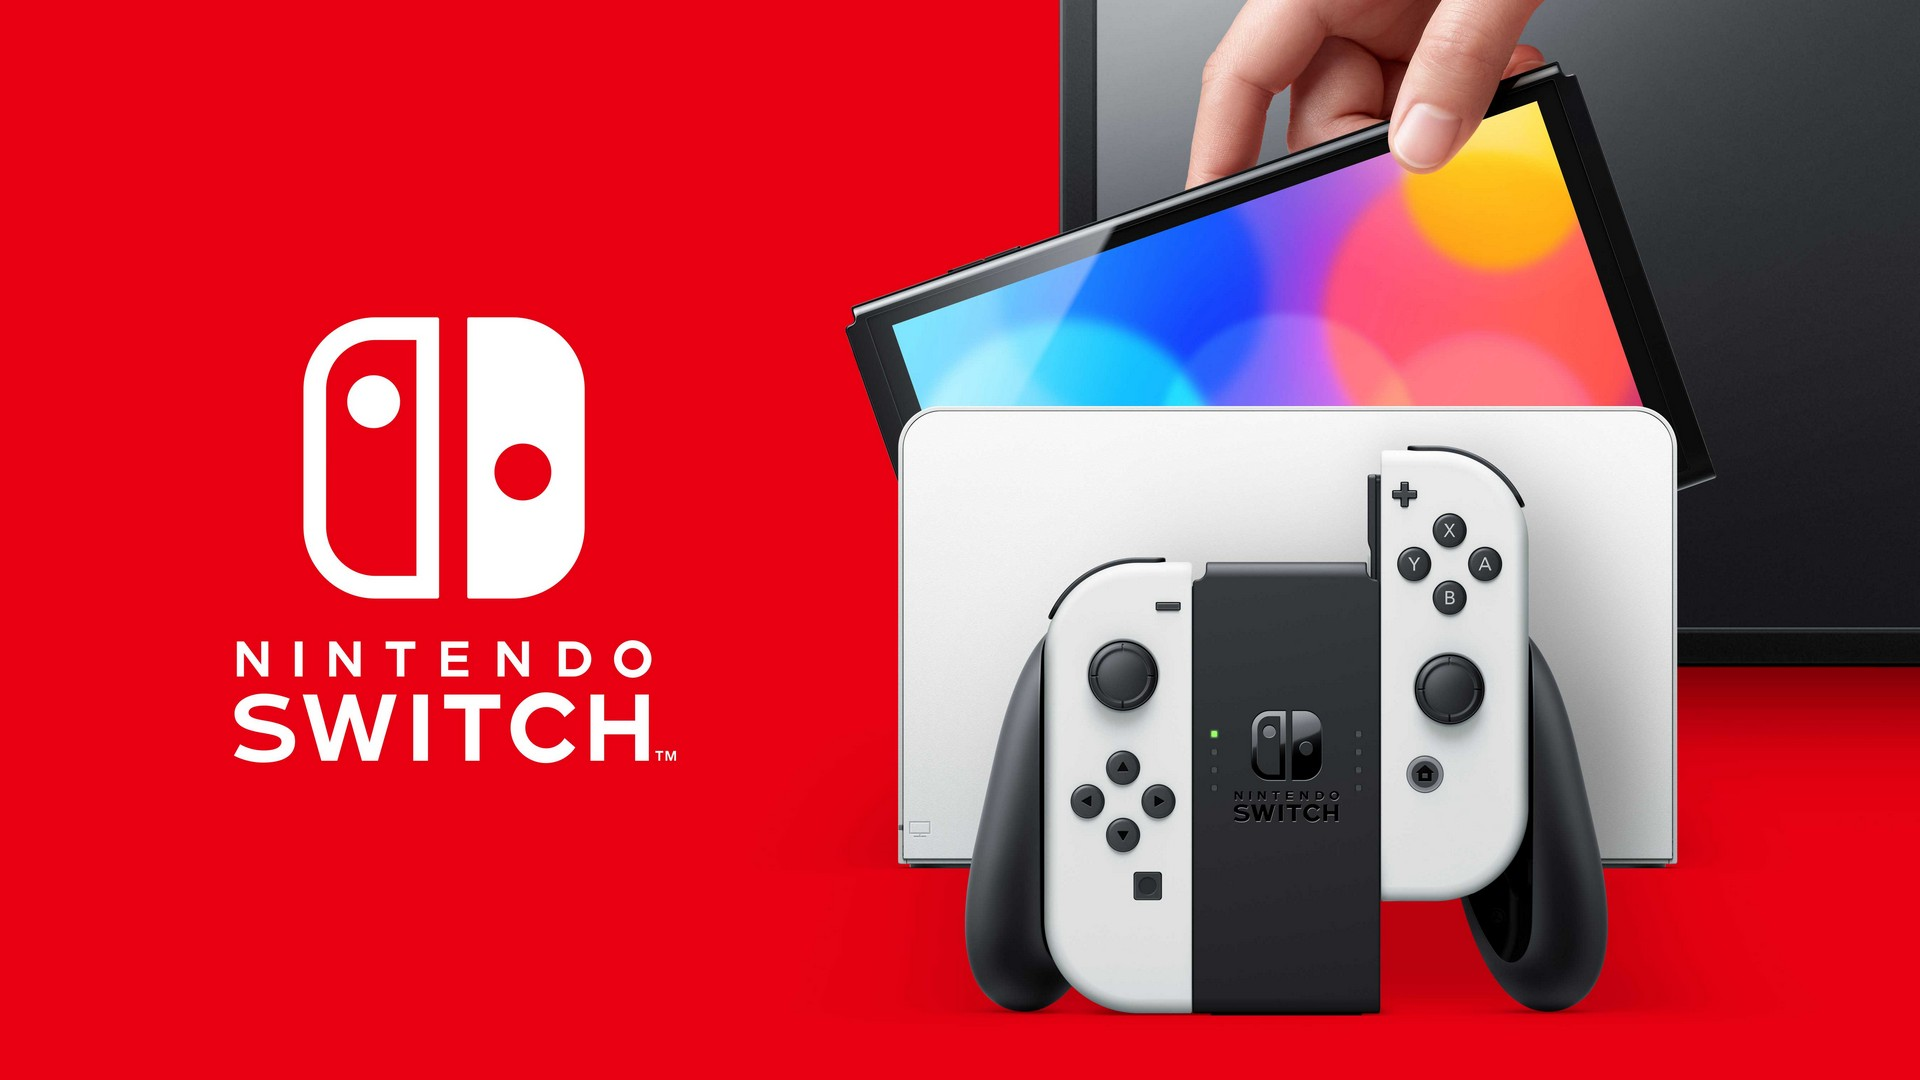 Nintendo Announces Nintendo Switch (OLED Model) With A Vibrant 7-Inch OLED Screen – Launching On 8th October